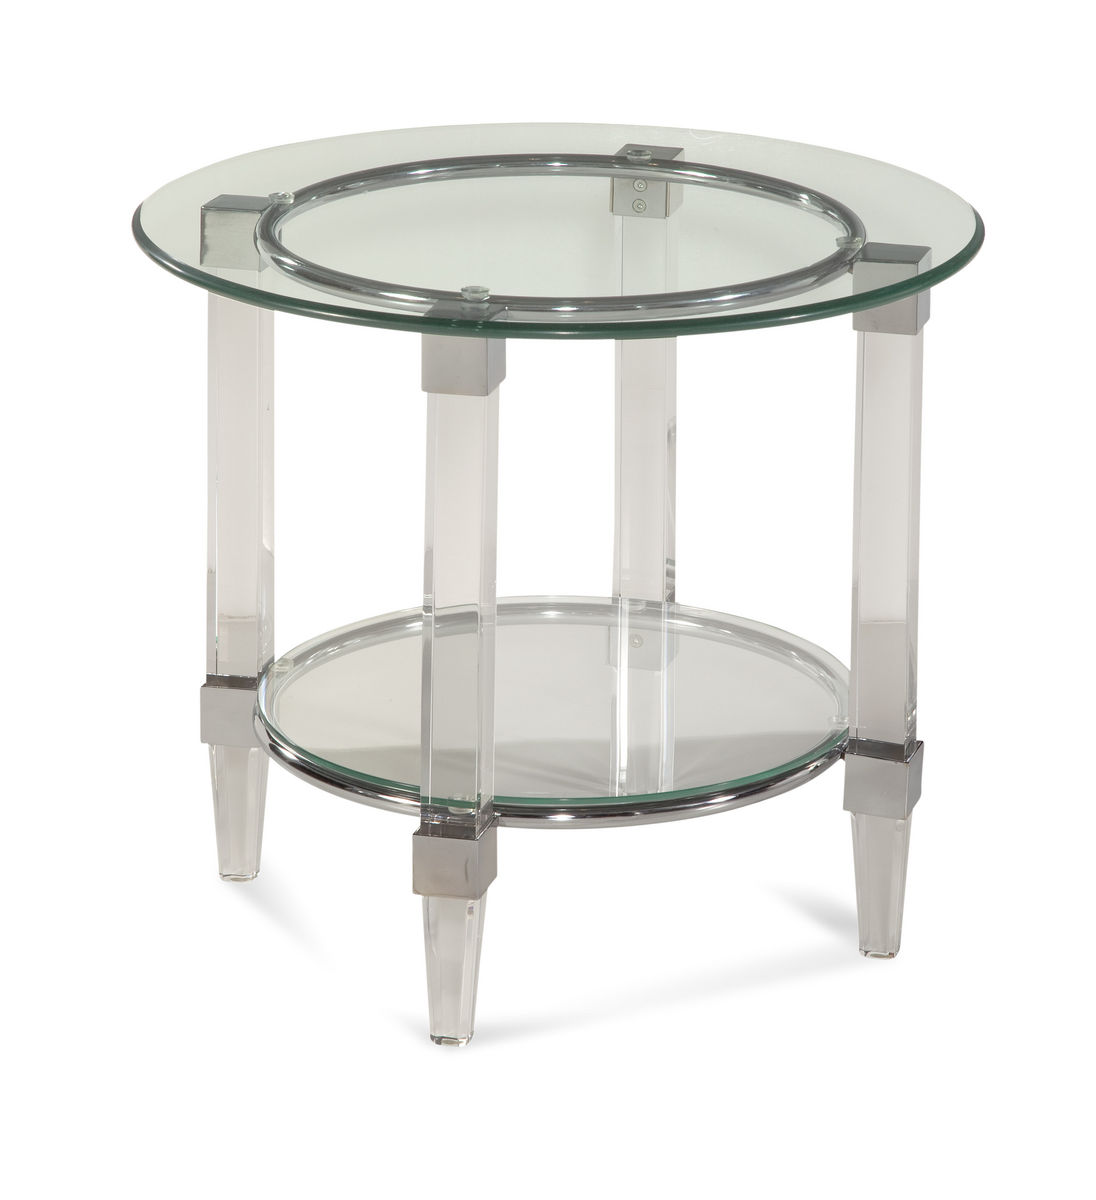 cristal round end table acrylic chrome unfinished accent shape piece nesting set house decorating ideas mini lamp runner ashley furniture trundle coastal decor lighting grey